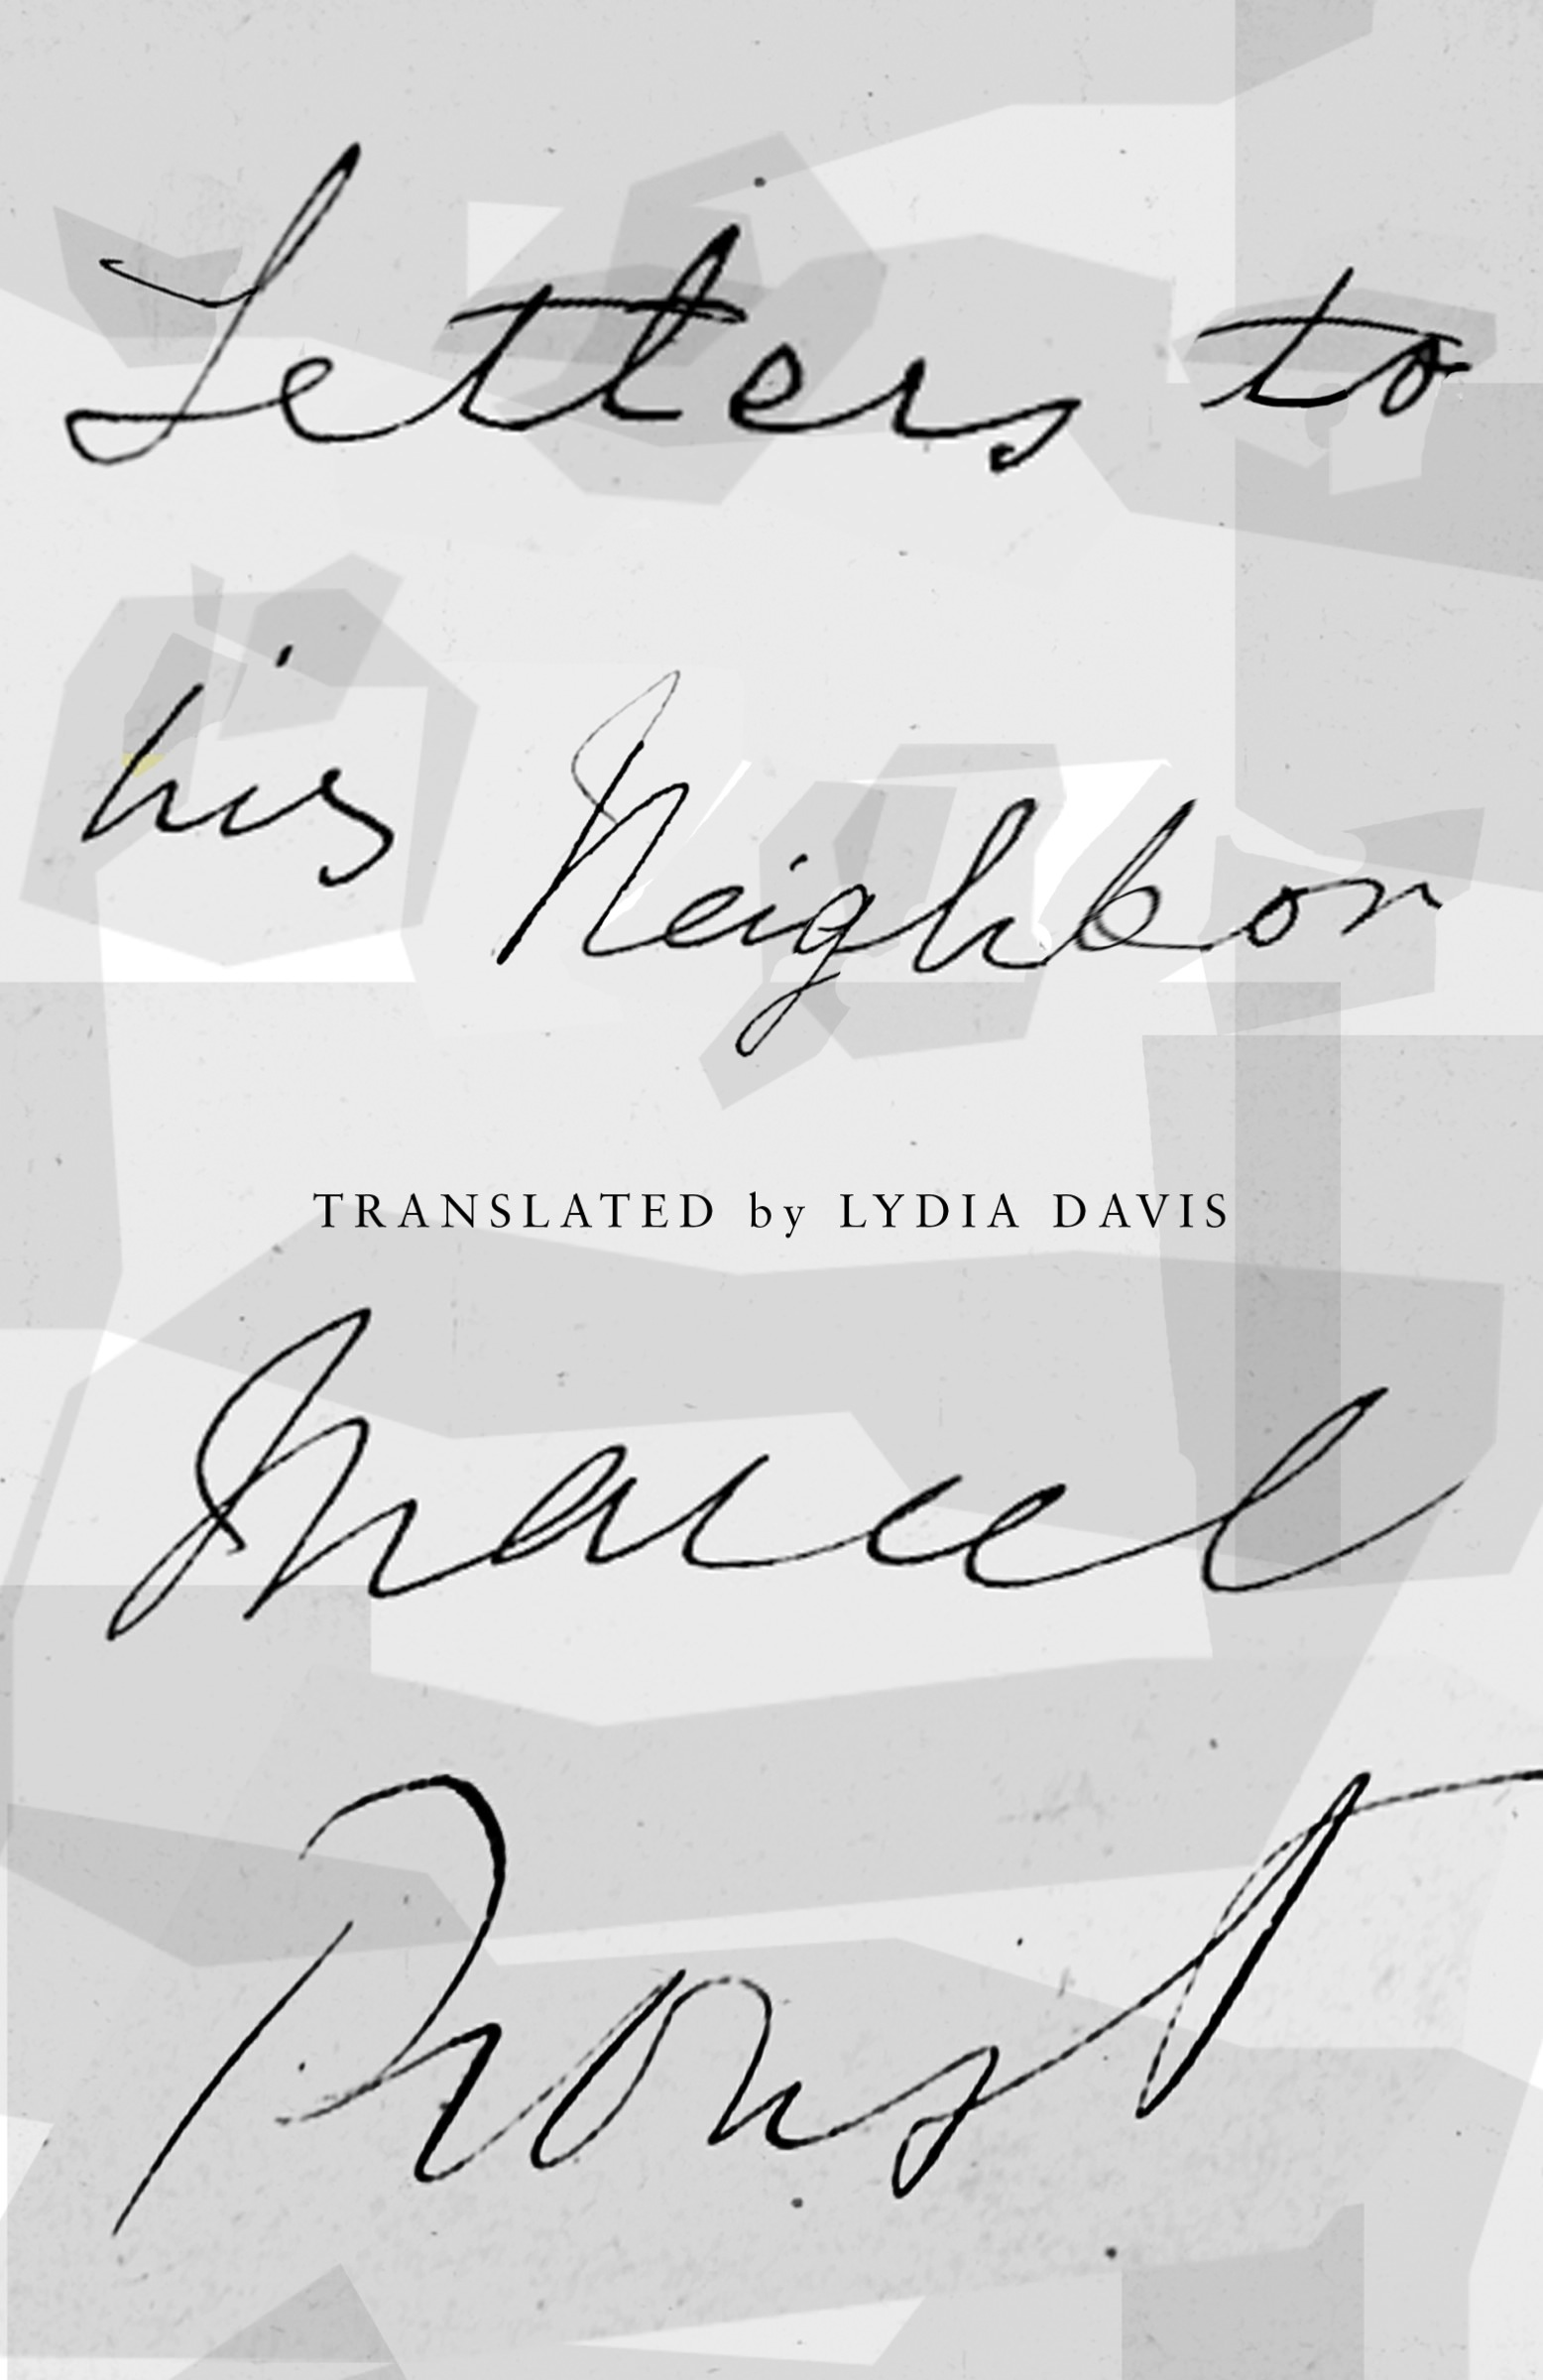 Letters to His Neighbor